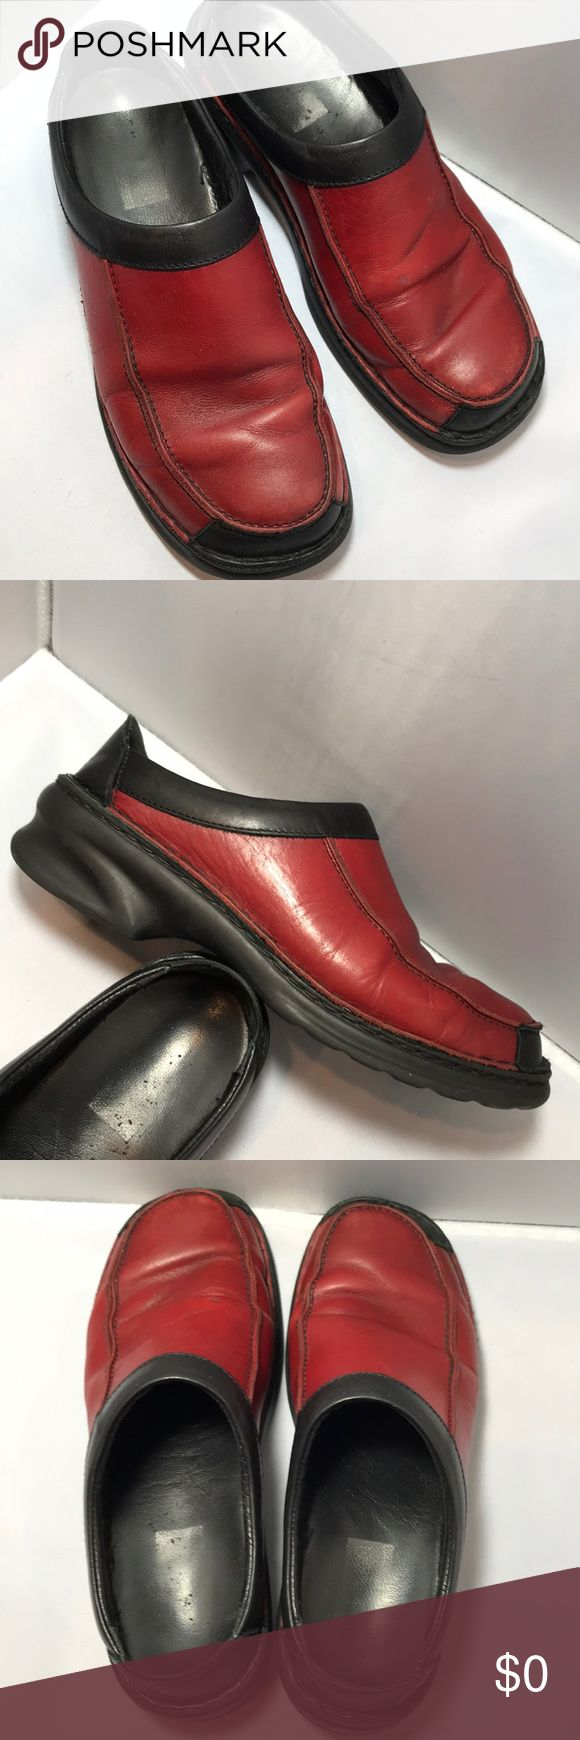 Josef Seibel  7 red / Black clogs They have been worn a bit but still have a lot of life Josef Seibel Shoes Mules & Clogs